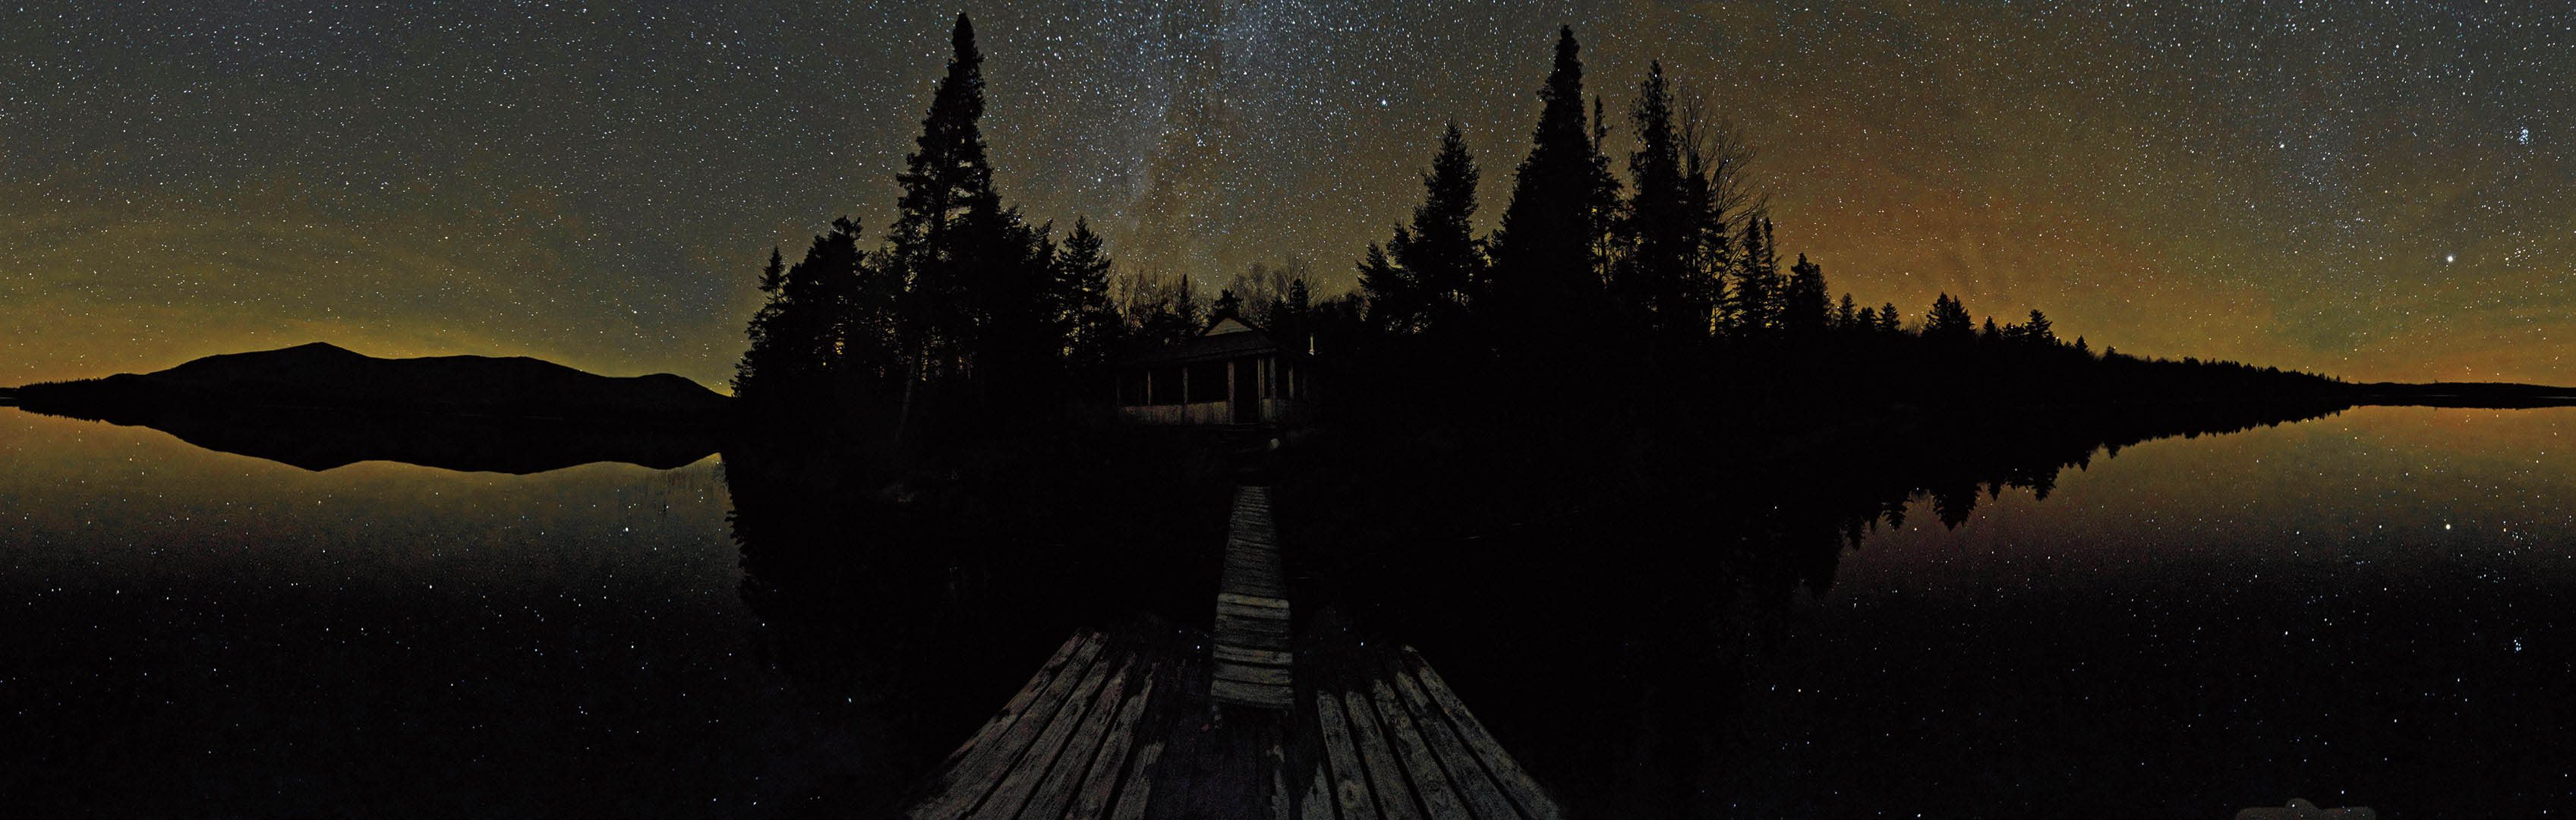 The Bates College Museum of Art exhibition Starstruck: The Fine Art of Astrophotography was a critical and popular success. Here, Will Strathmann '13 of Newtown Square, Pa., captures the Maine night sky during a Bates-sponsored photography workshop on West Branch Pond.